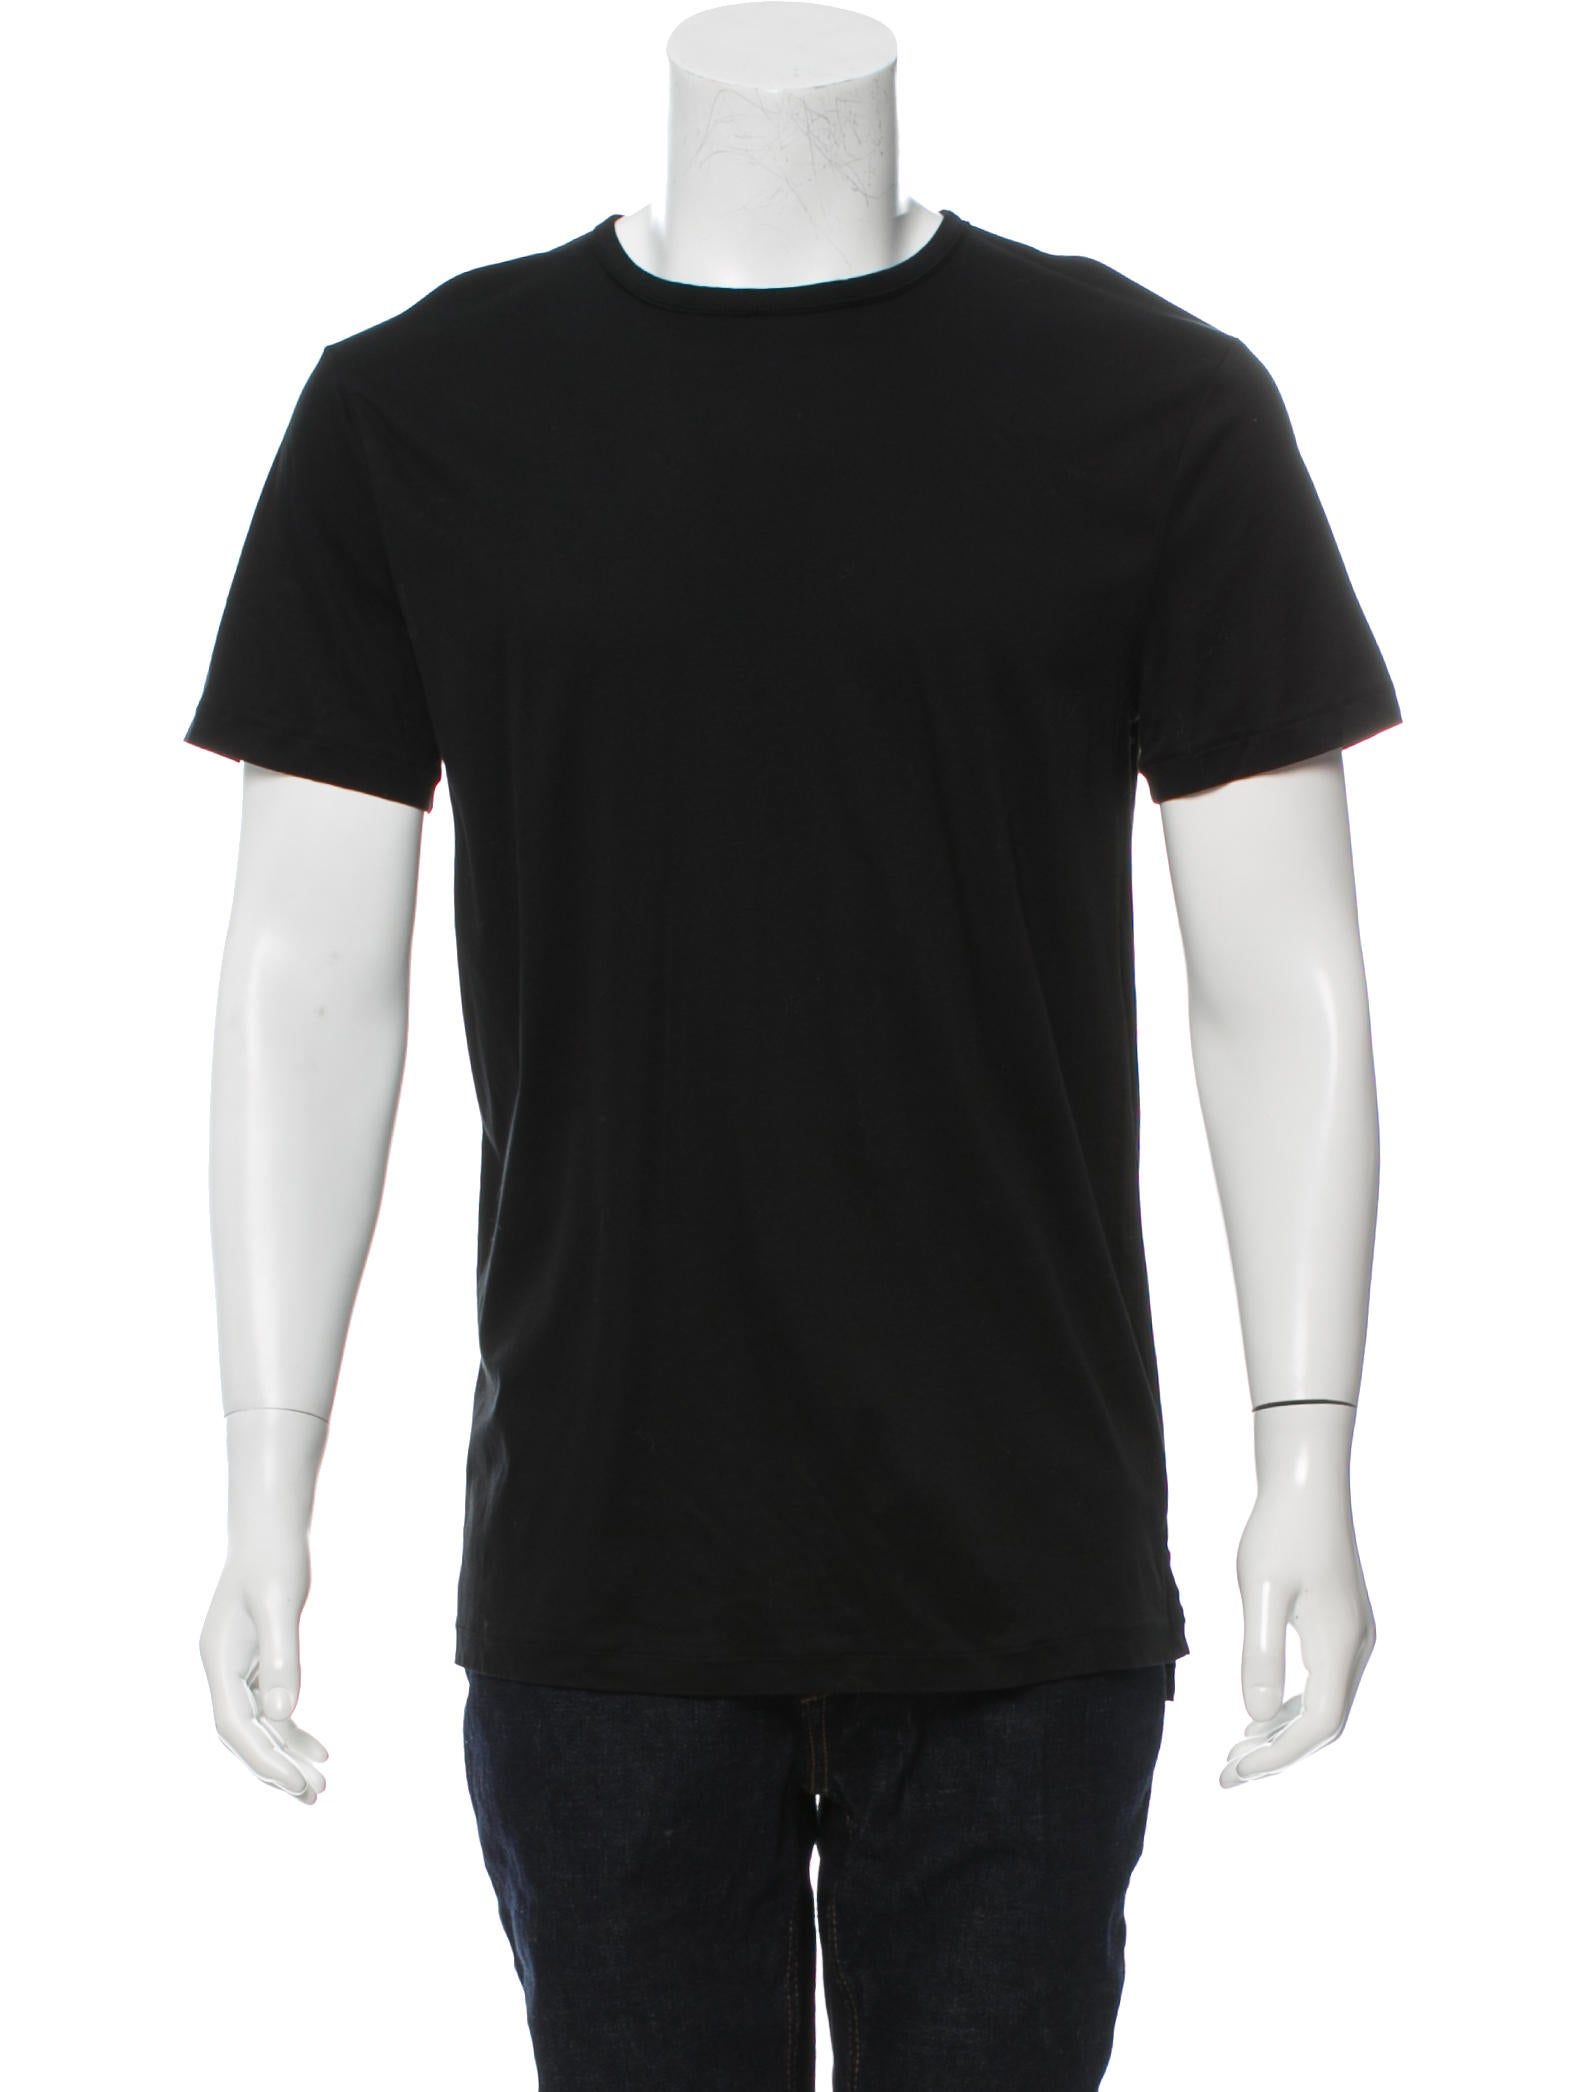 t by alexander wang short sleeve crew neck t shirt clothing wtb33347 the realreal. Black Bedroom Furniture Sets. Home Design Ideas